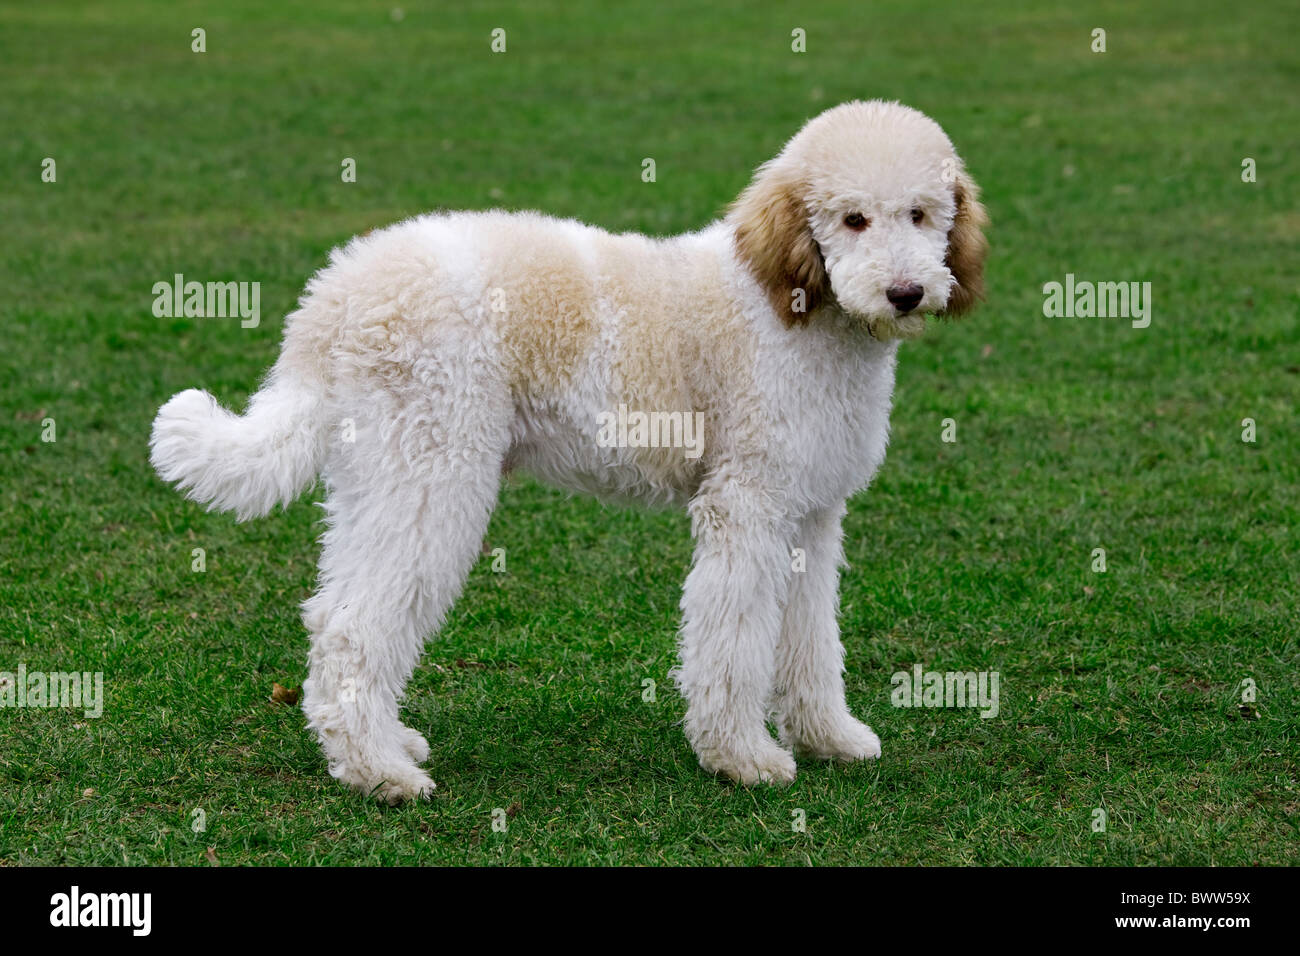 Standard poodle (Canis lupus familiaris) in garden - Stock Image